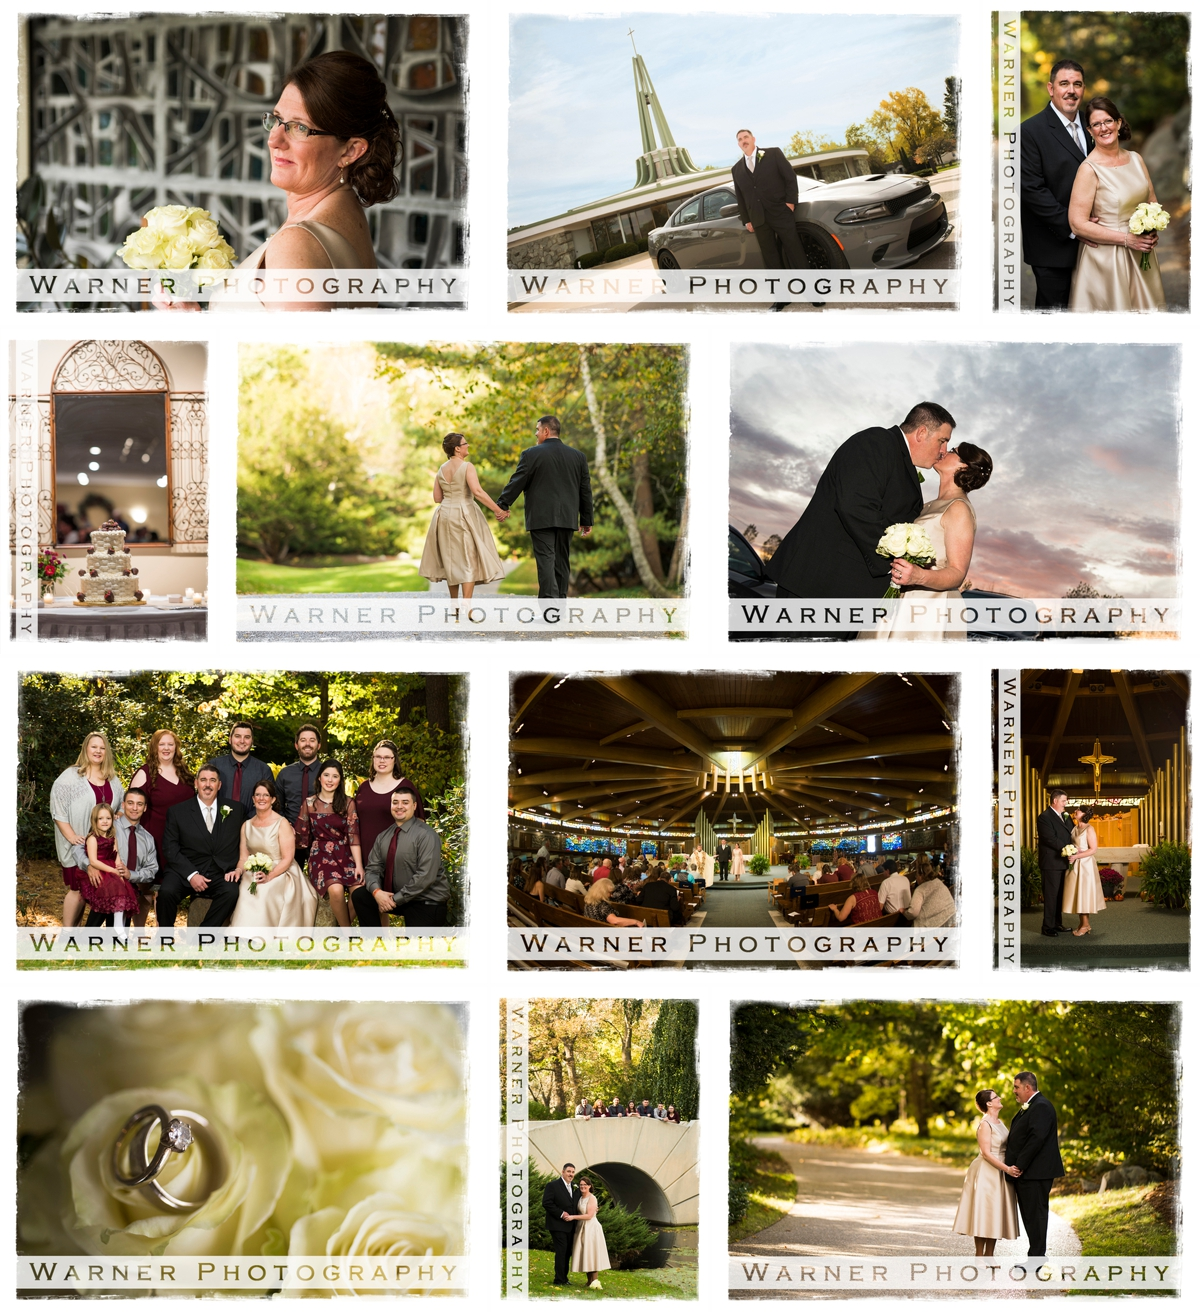 Lovely wedding collage by Warner Photography in Midland Michigan